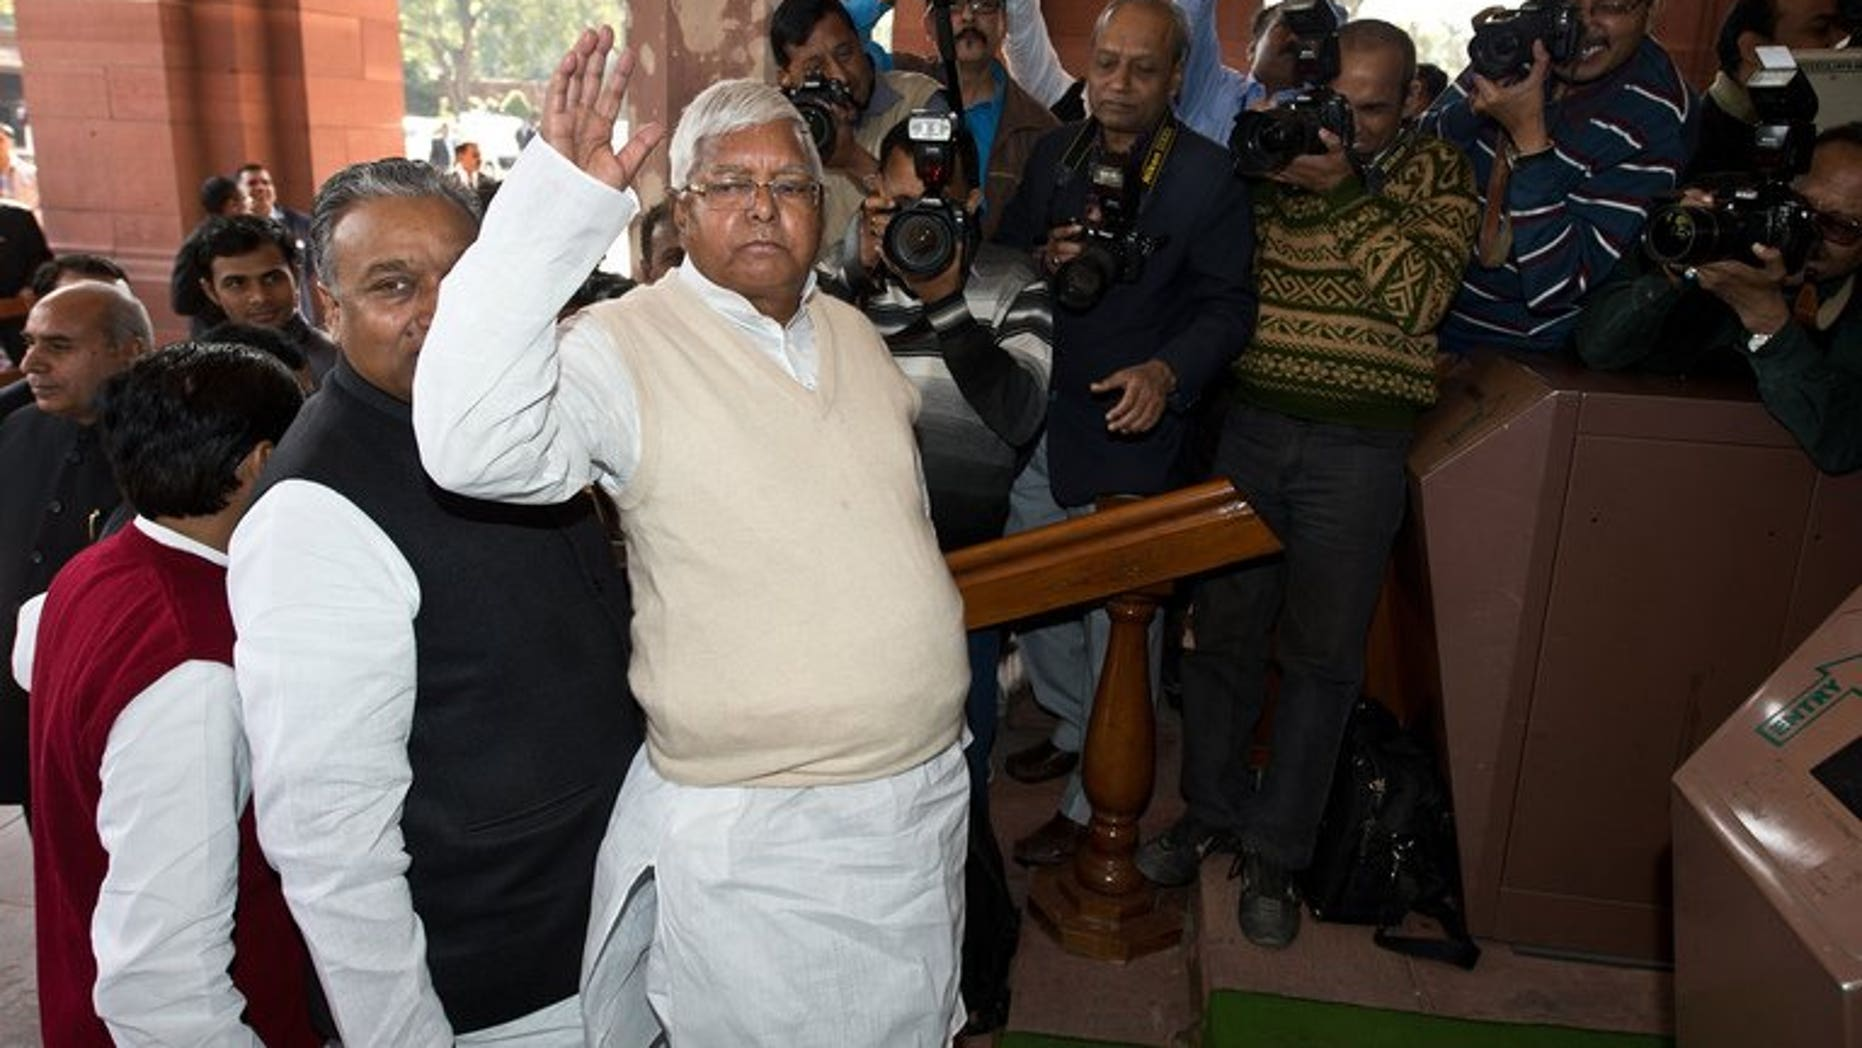 Former Railway Minister Lalu Prasad Yadav (C) arrives at Parliament for the unveiling of the Railway Budget in New Delhi on February 26, 2013.